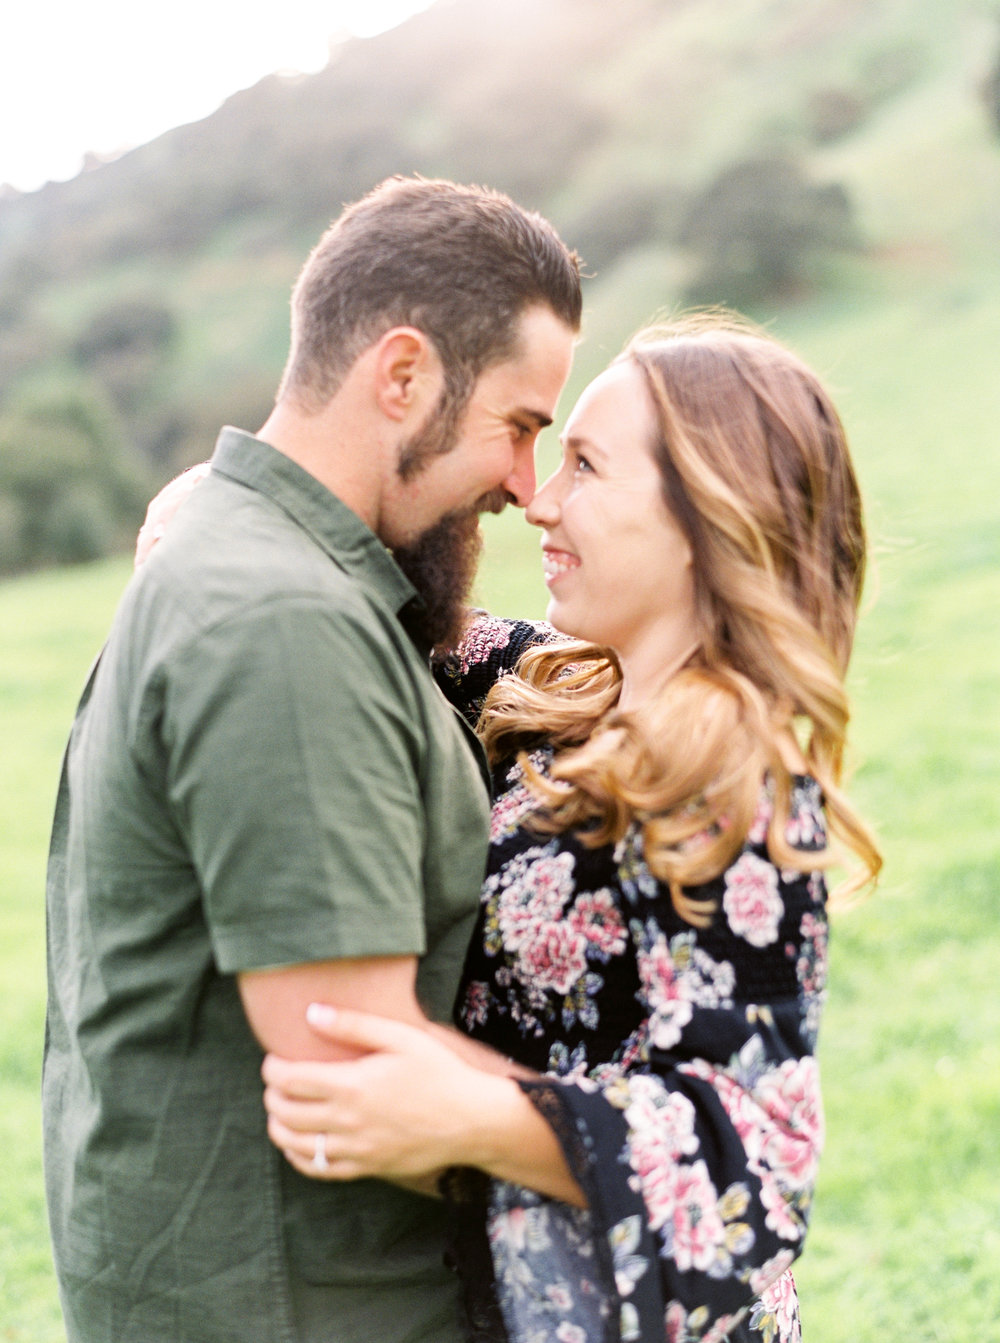 Sunol California Engagement Shoot - Kristine Herman Photography-2.jpg